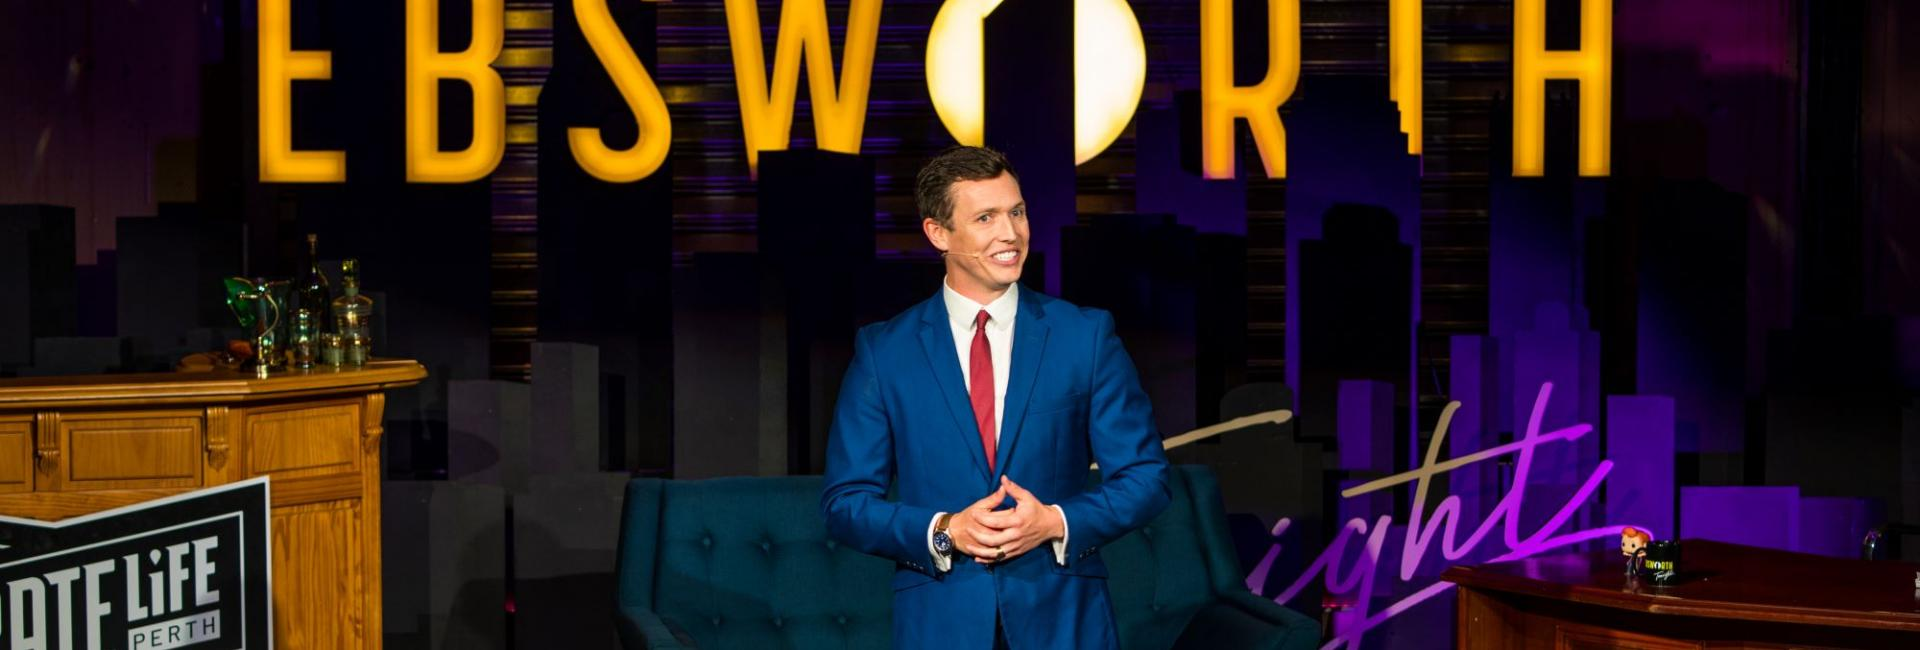 Ebsworth Tonight: Perth's Biggest Live Talk Show is Worth Staying up for